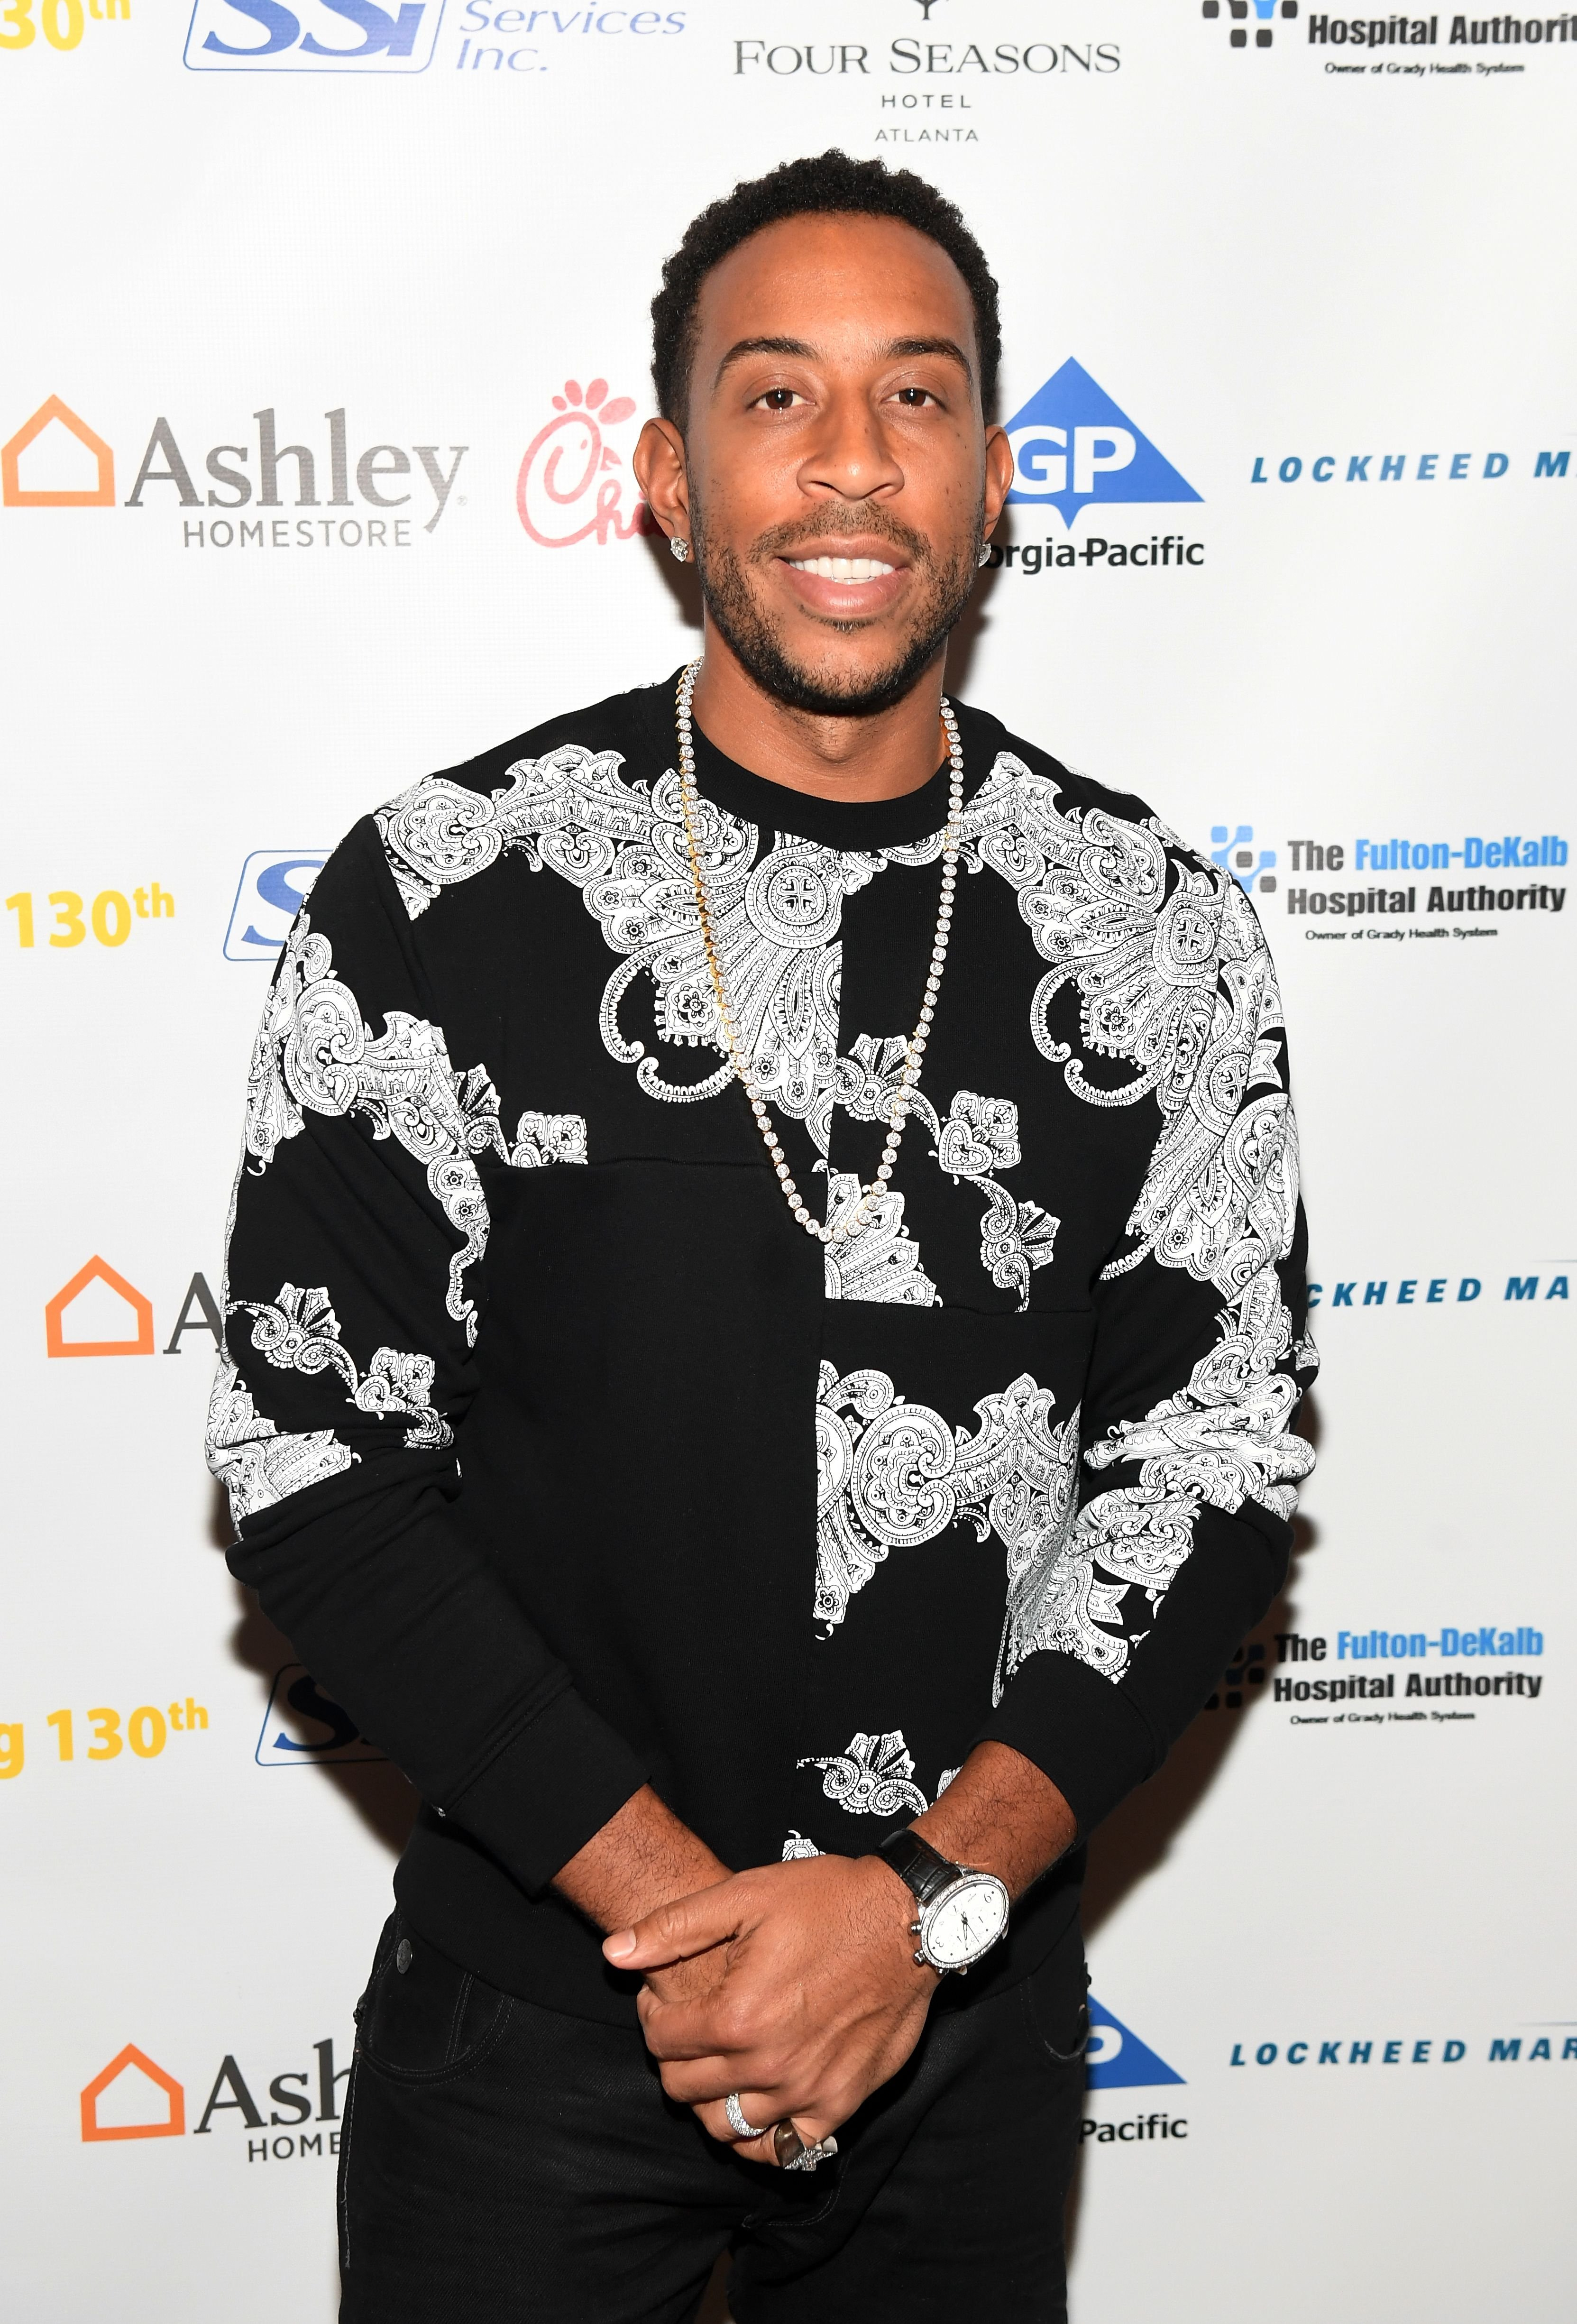 Ludacris at the Carrie Steele-Pitts Home 130th Anniversary Gala on March 24, 2018 in Atlanta. | Photo: Getty Images